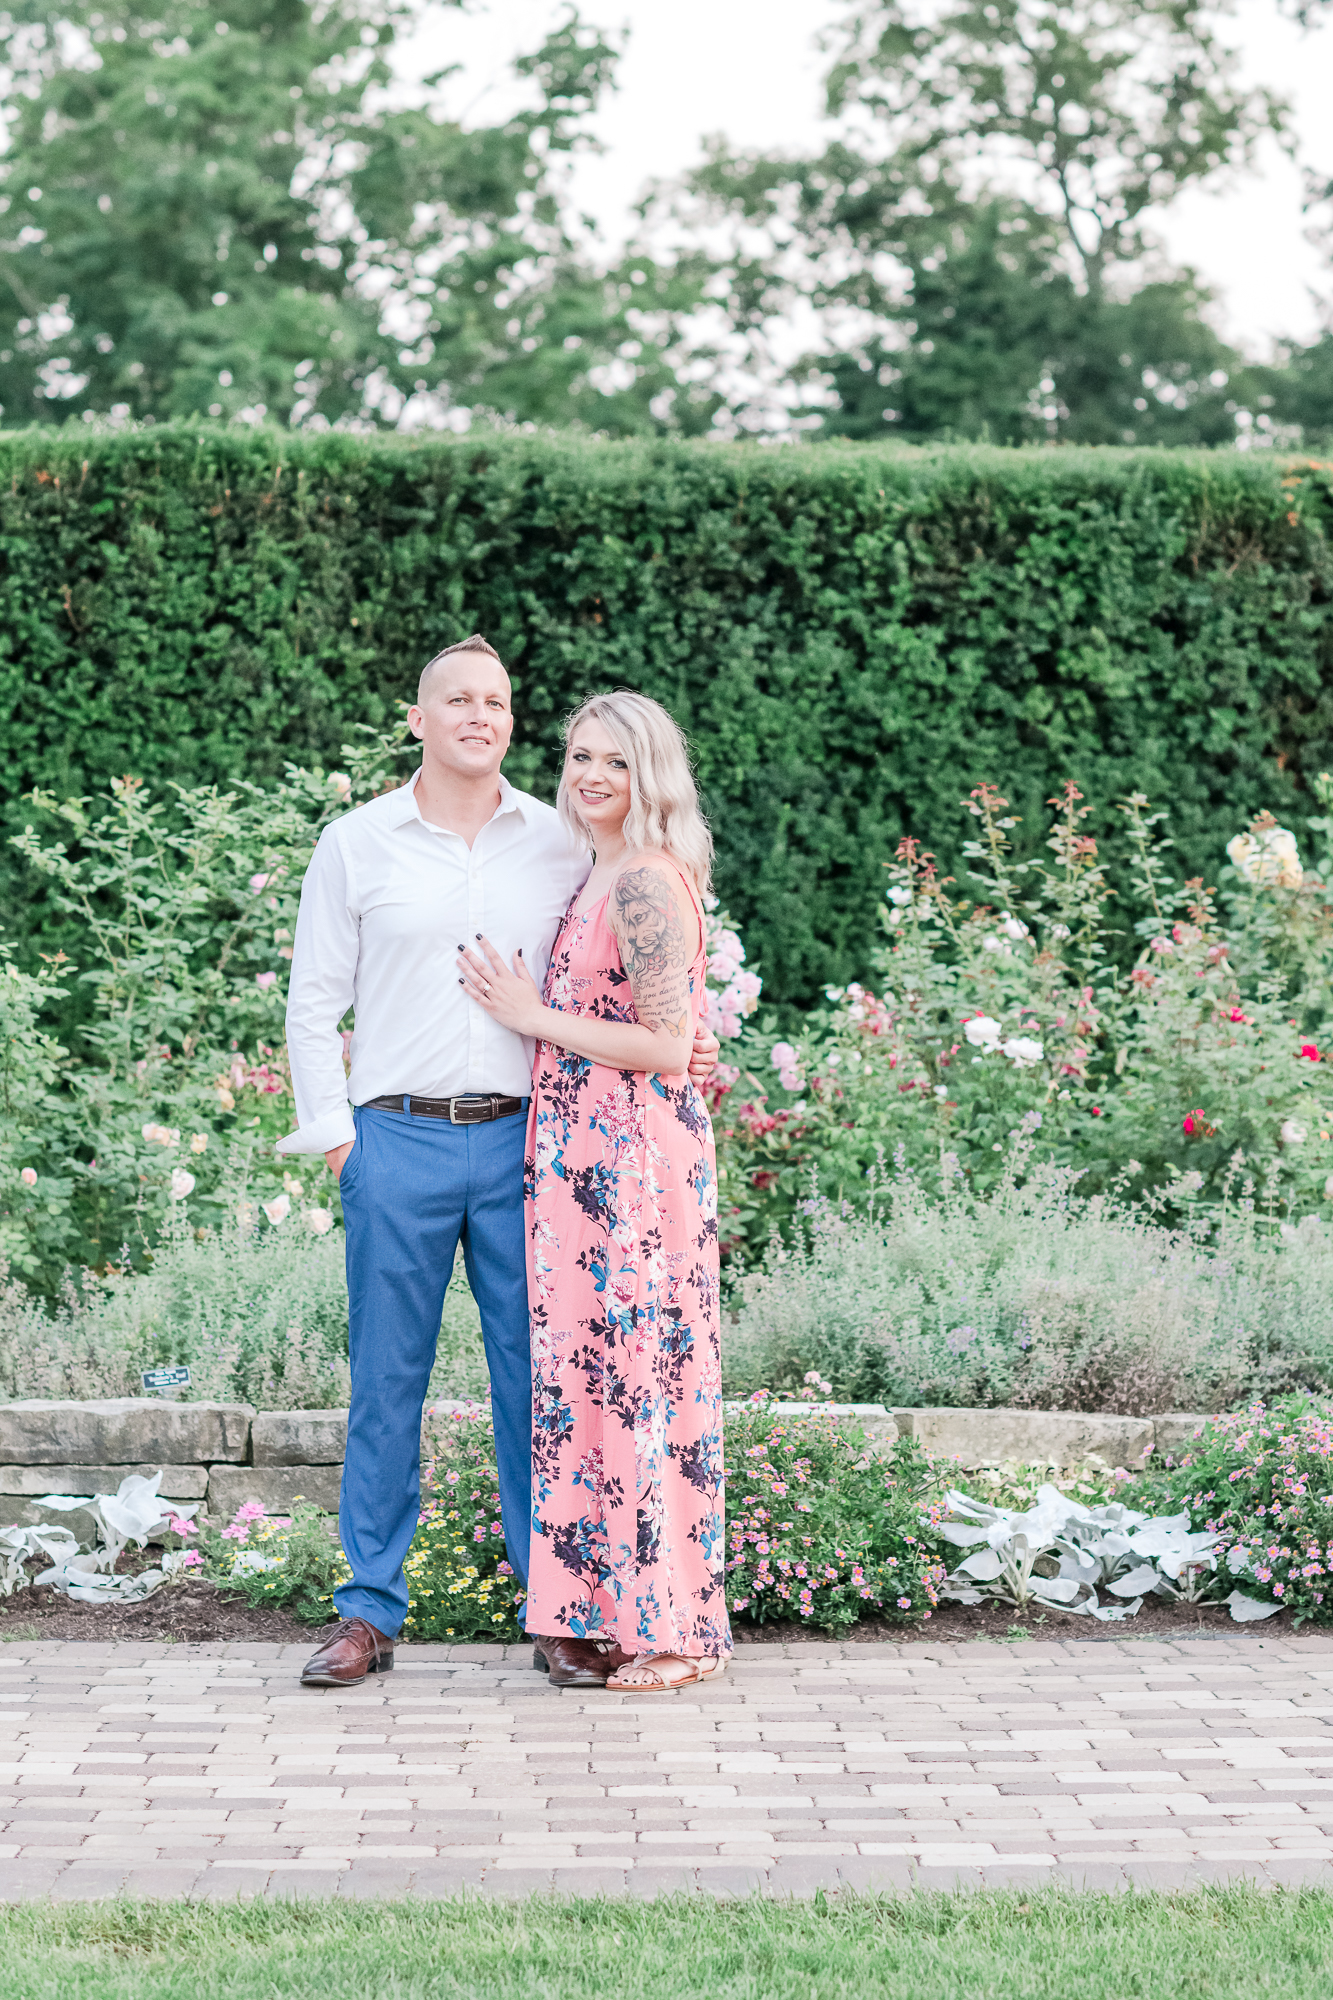 Kristina+Matt_Engagement Session_Mill Creek Park_Youngstown_Ohio-43.jpg